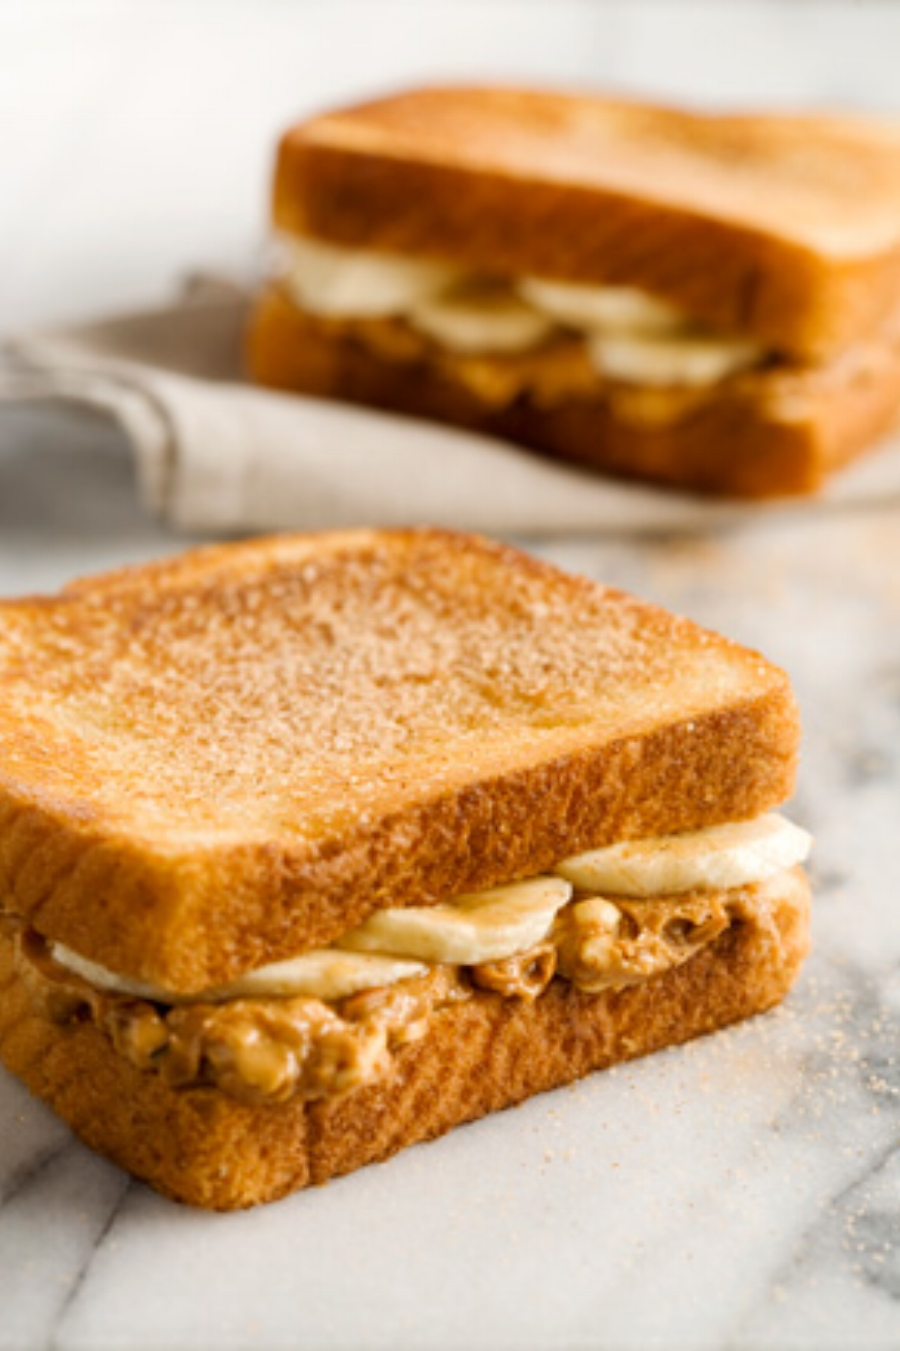 credits: https://www.pauladeen.com/recipe/paulas-fried-peanut-butter-and-banana-sandwich/